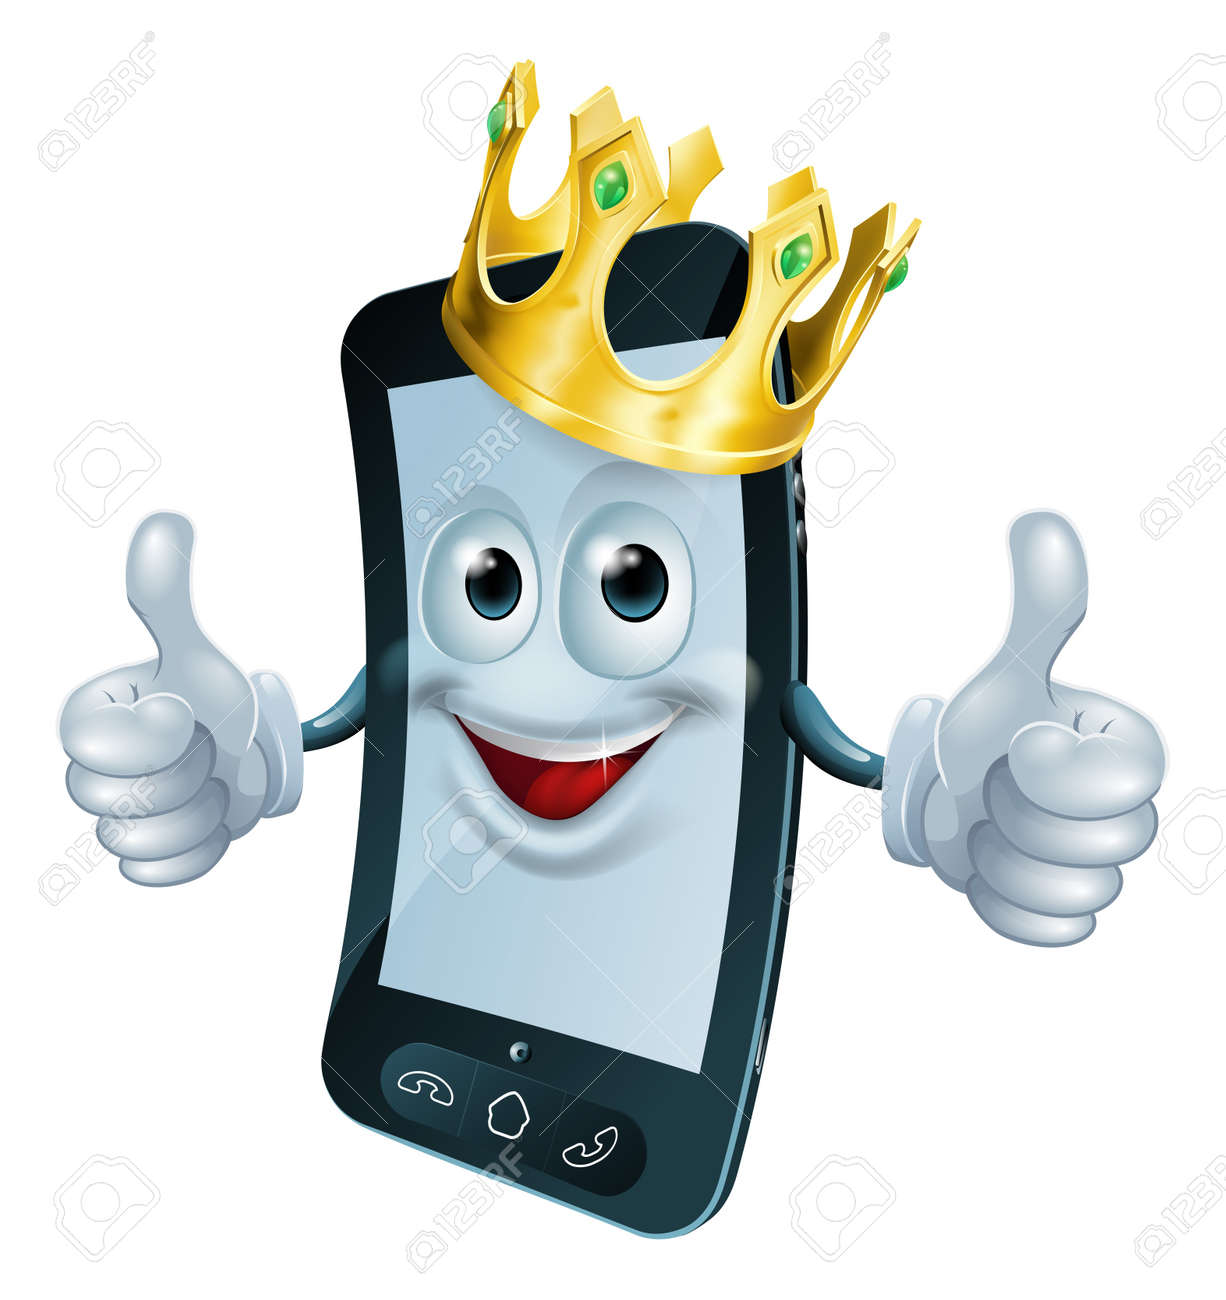 Illustration of a phone mascot man wearing a gold crown and giving a double thumbs up Stock Vector - 19595250